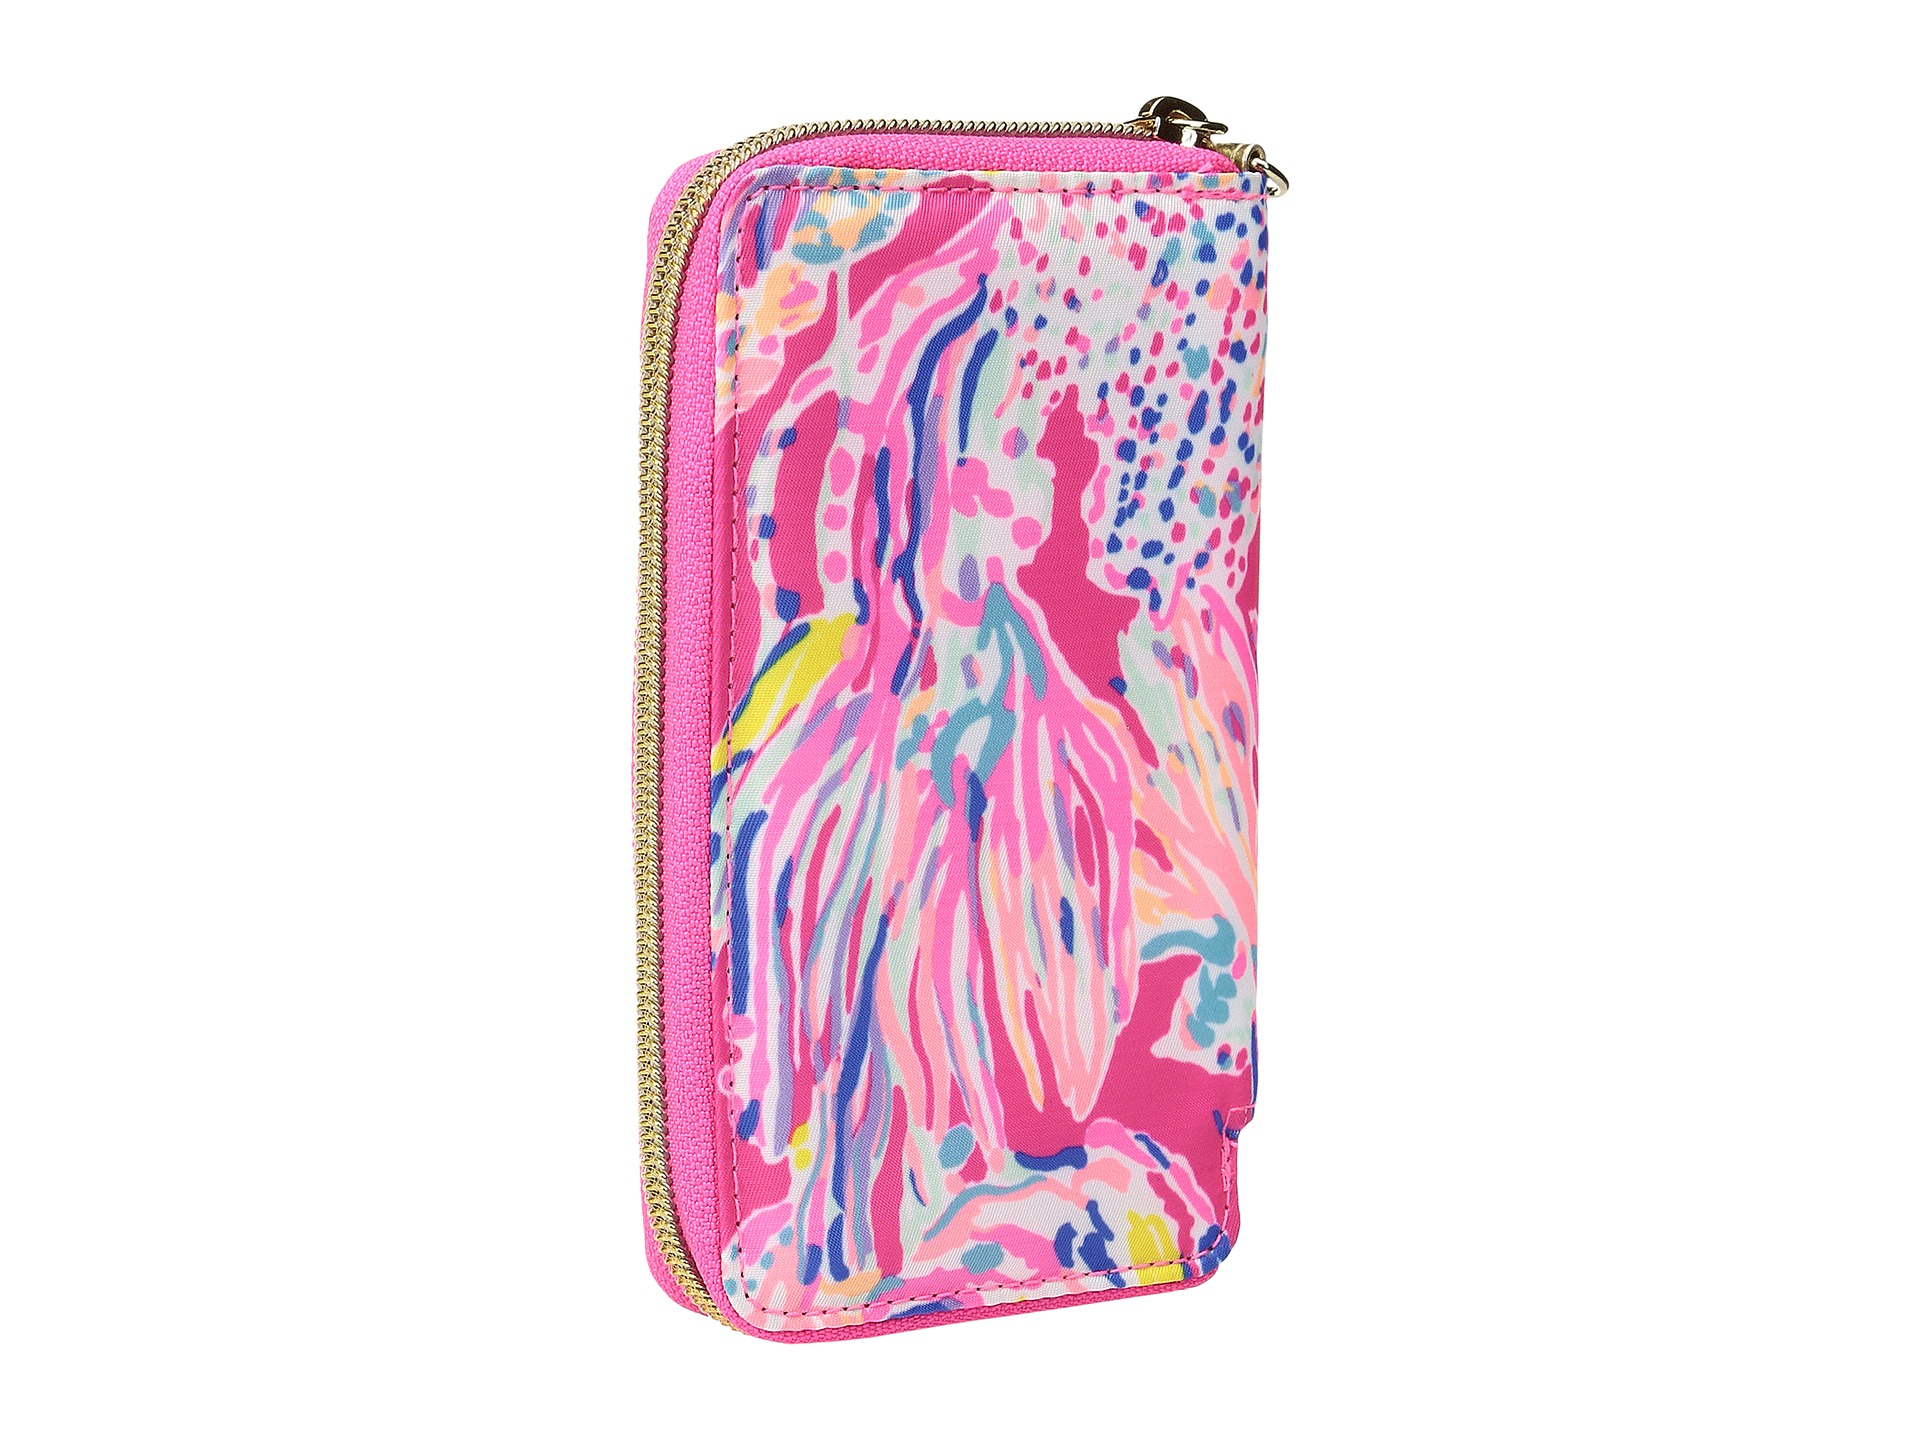 Enchanting Lilly Pulitzer Phone Case for Phone Accessories Ideas: Phi Mu Lilly Pulitzer | Vera Bradley Ipad Covers | Lilly Pulitzer Phone Case